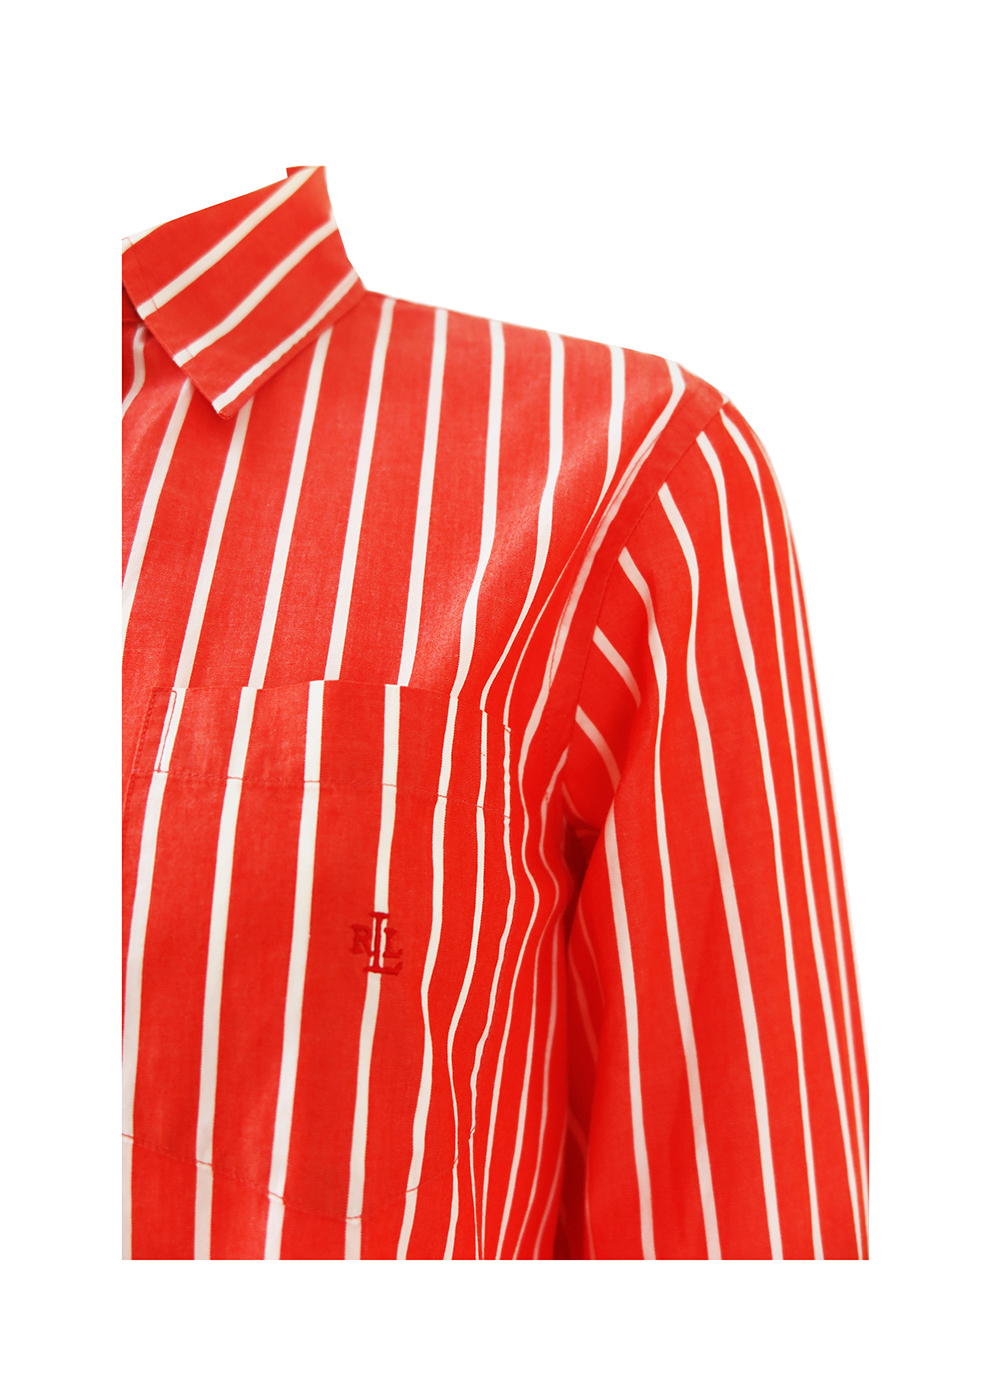 338d8b0a573c4 Ralph Lauren Red and White Striped Shirt - S M. Touch to zoom. IMG 4338